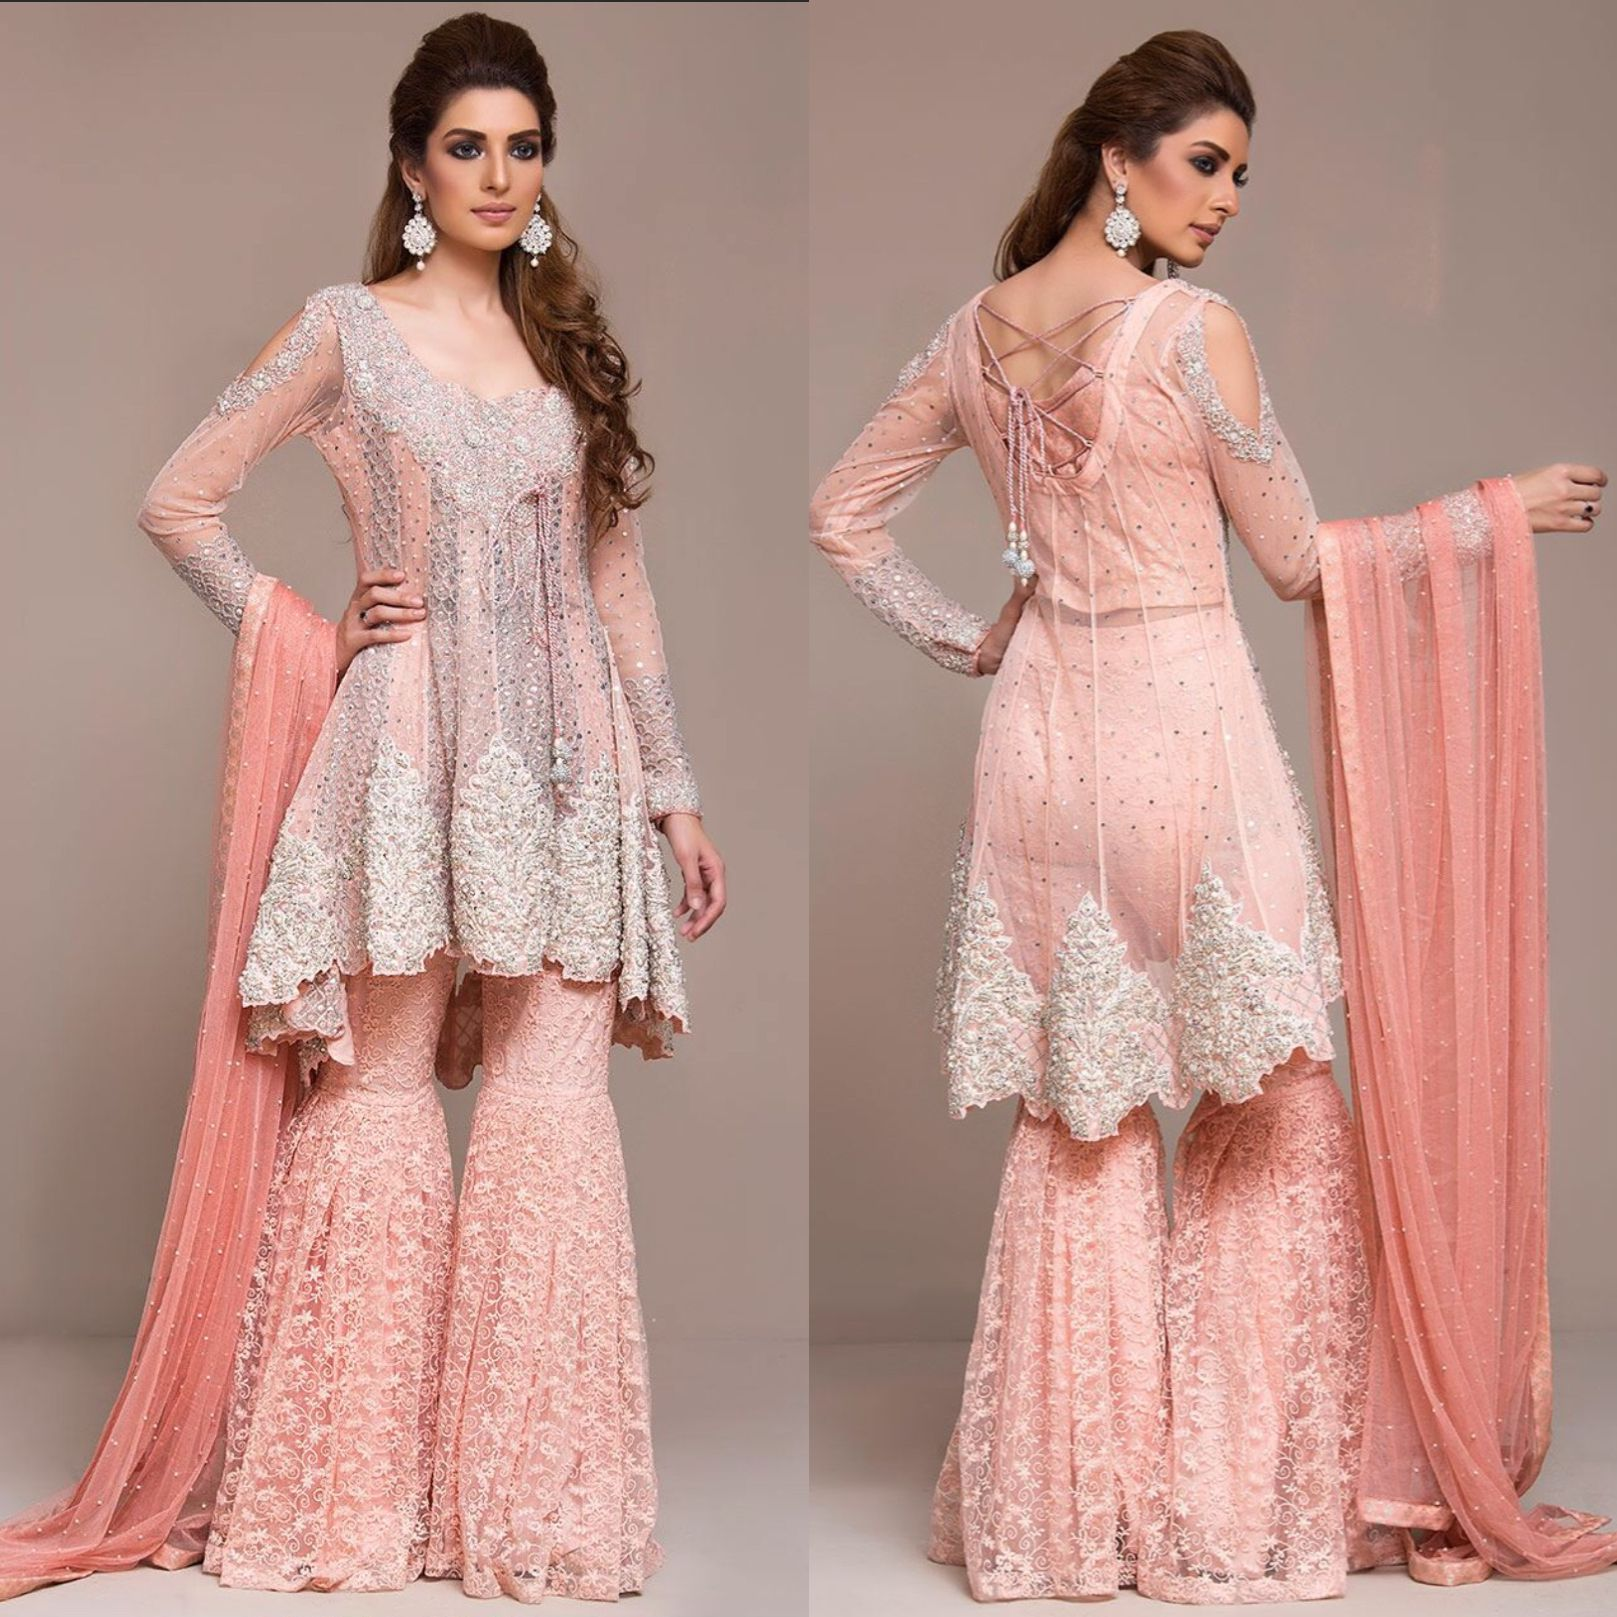 Gharara sharara | Pakistan wedding | Pinterest | Alta costura ...